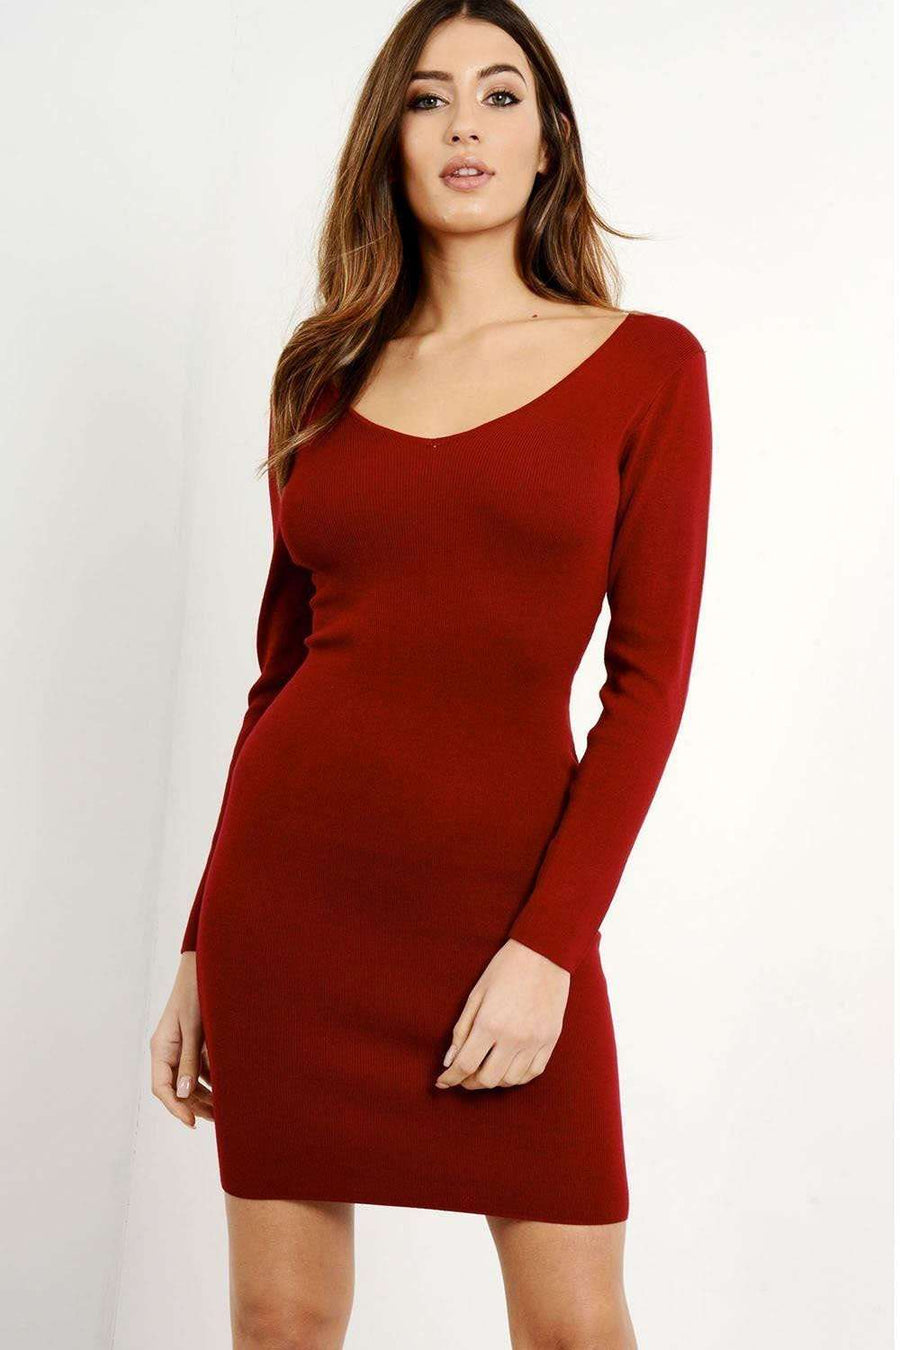 Ashlene Long Sleeve Lace Up Bodycon Dress - bejealous-com